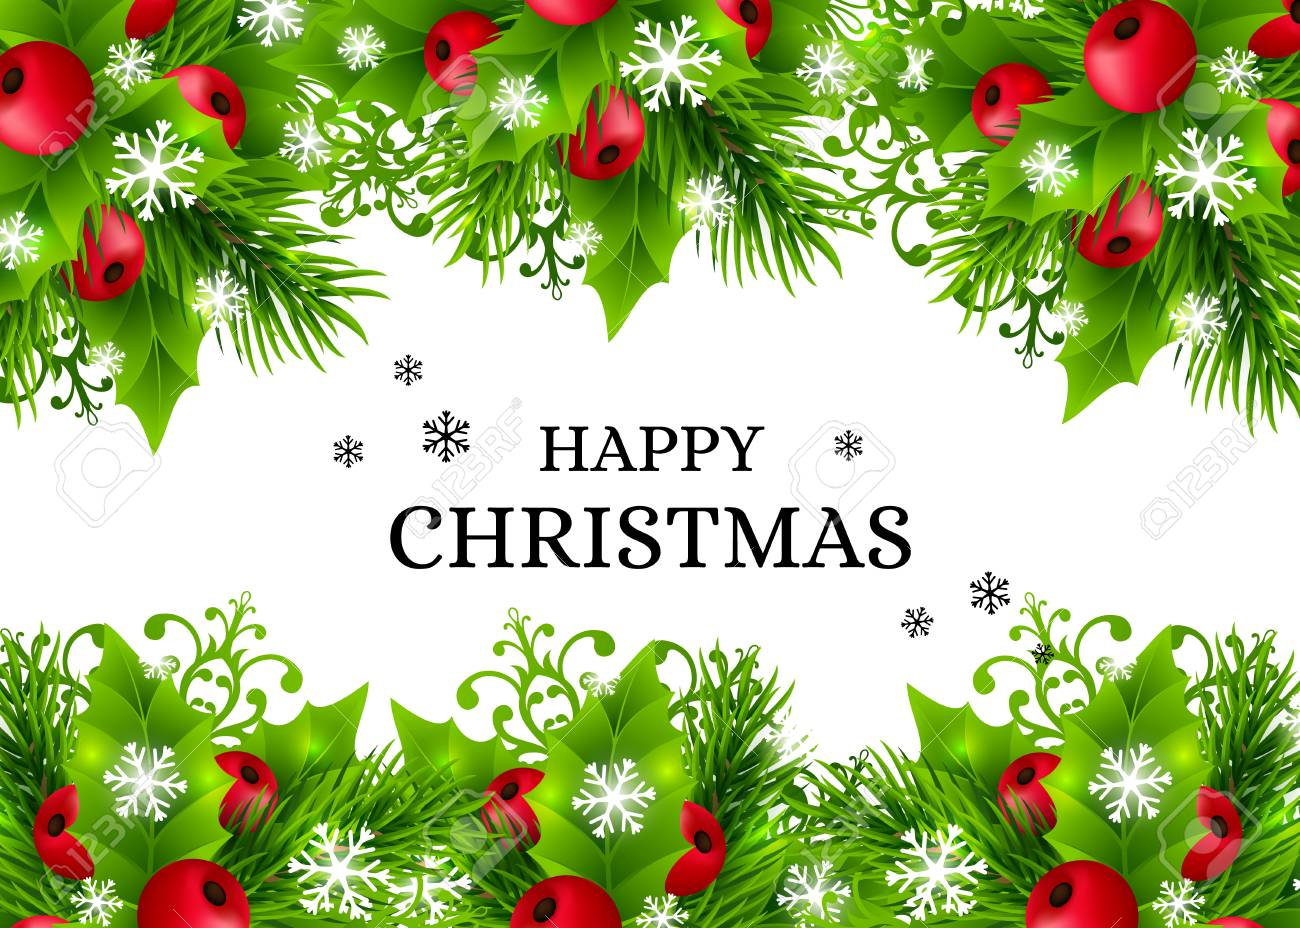 Christmas Leaves.Christmas Background With Fir Branches Holly Leaves Red Holly